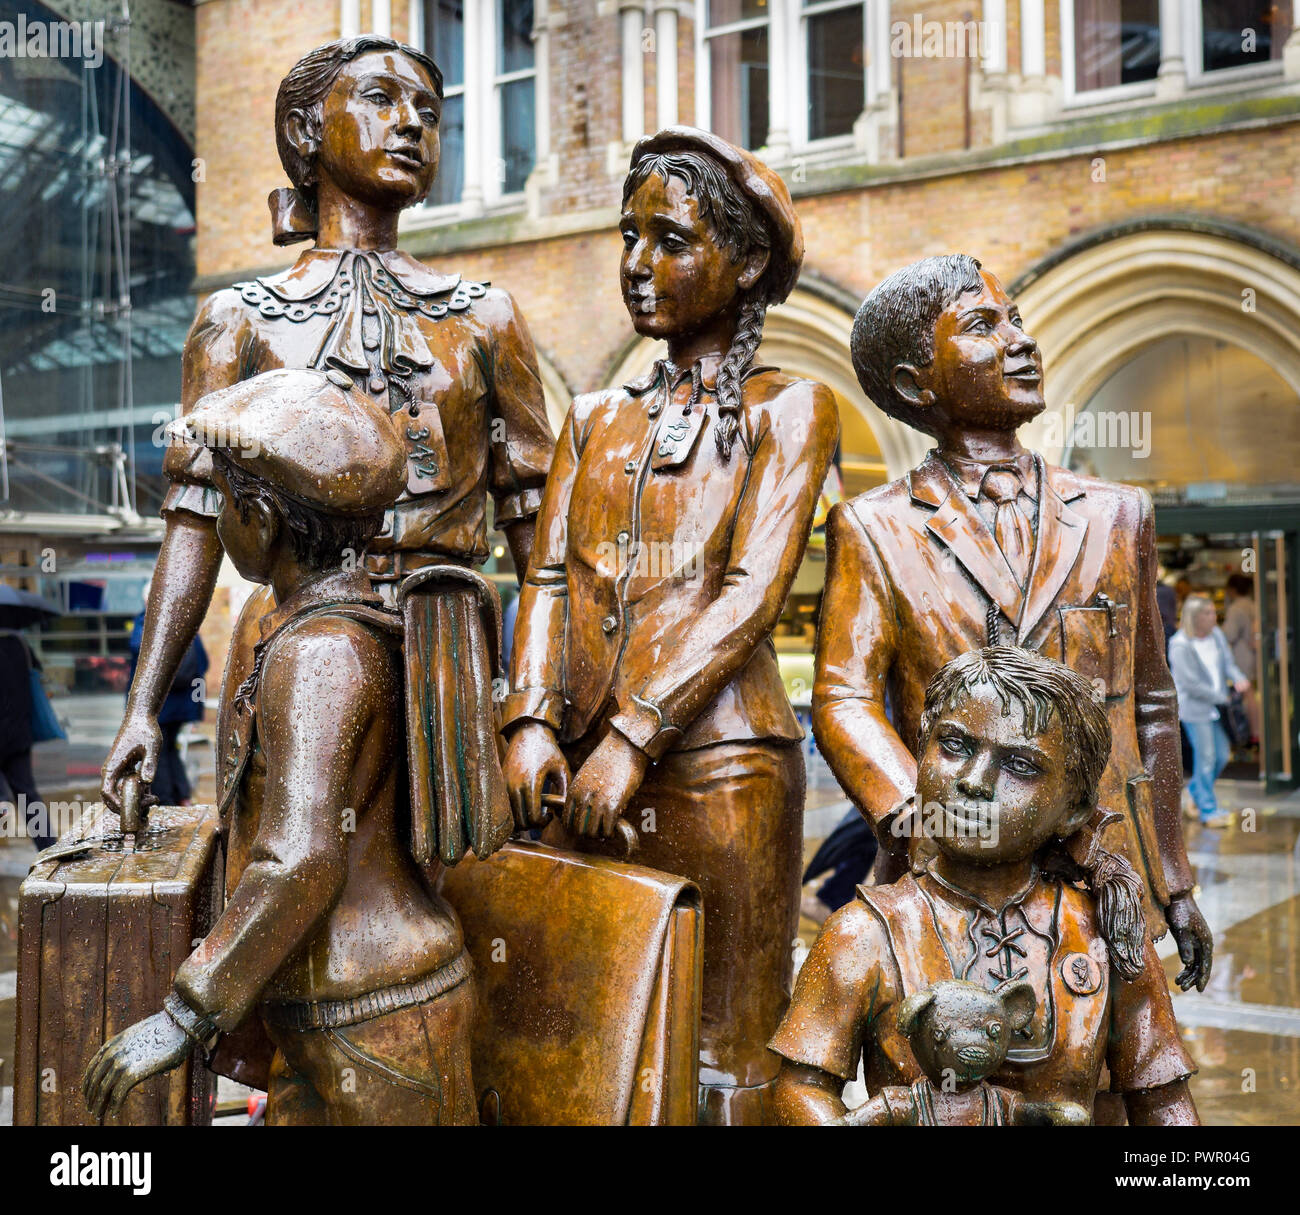 'Kindertransport - the arrival' Liverpool Street Station in London, where trains of jewish children fleeing from Nazi tyranny arrived - Stock Image